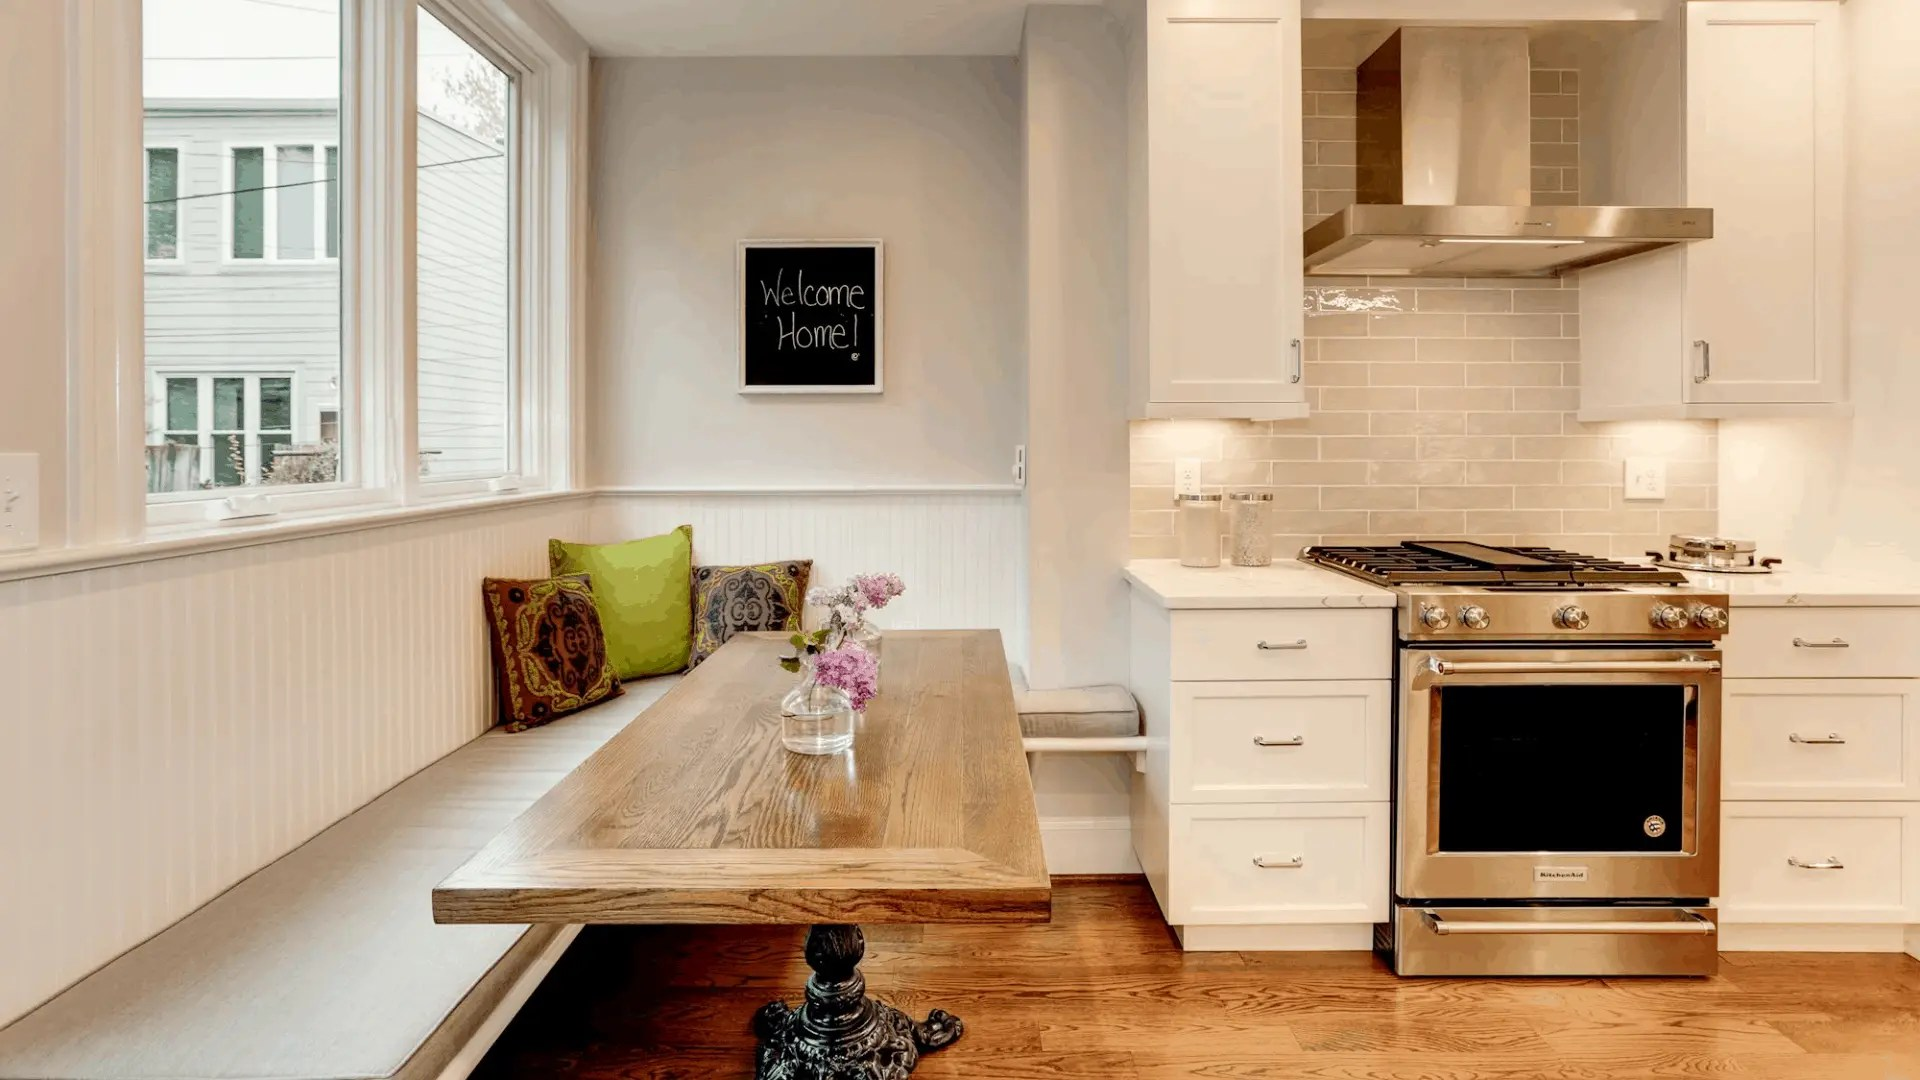 A_SE#2_kitchen_banquette_craftedtable_1920x1080